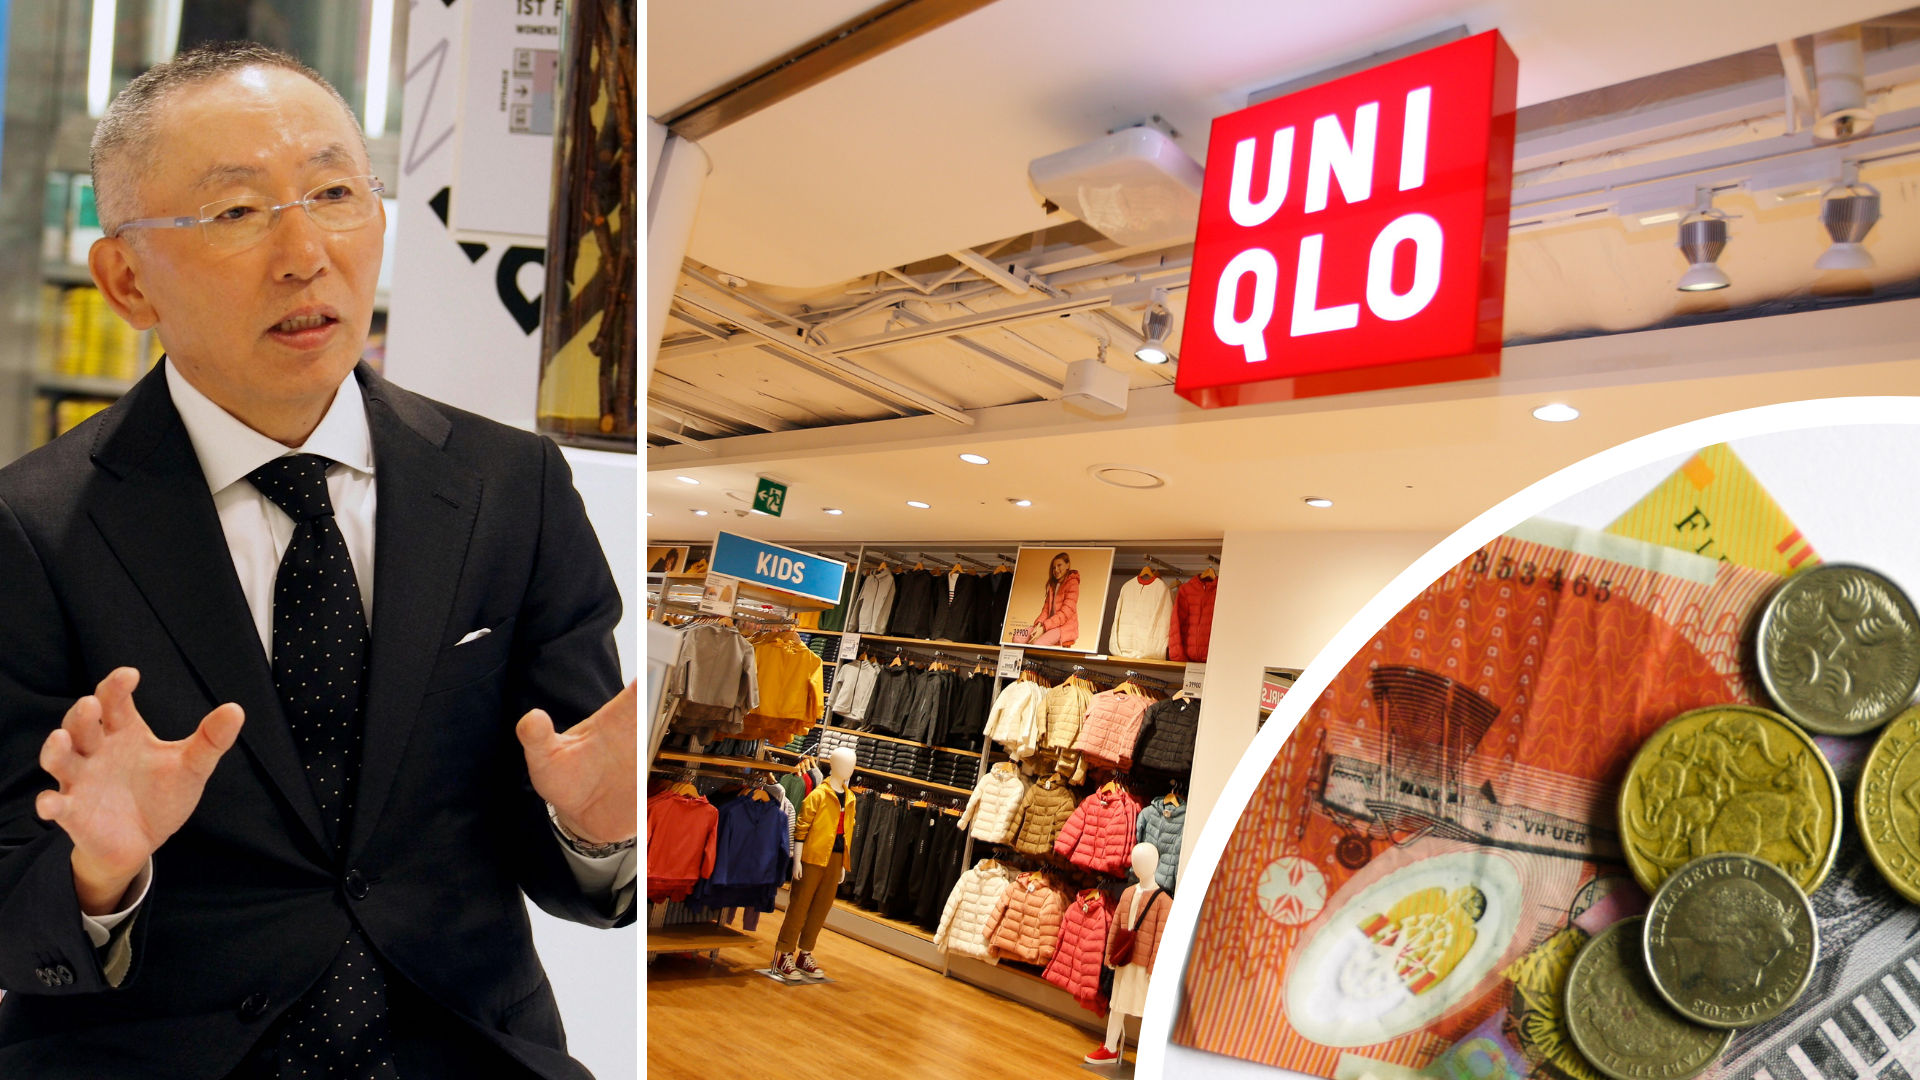 Uniqlo boss says $28b job is better for a woman